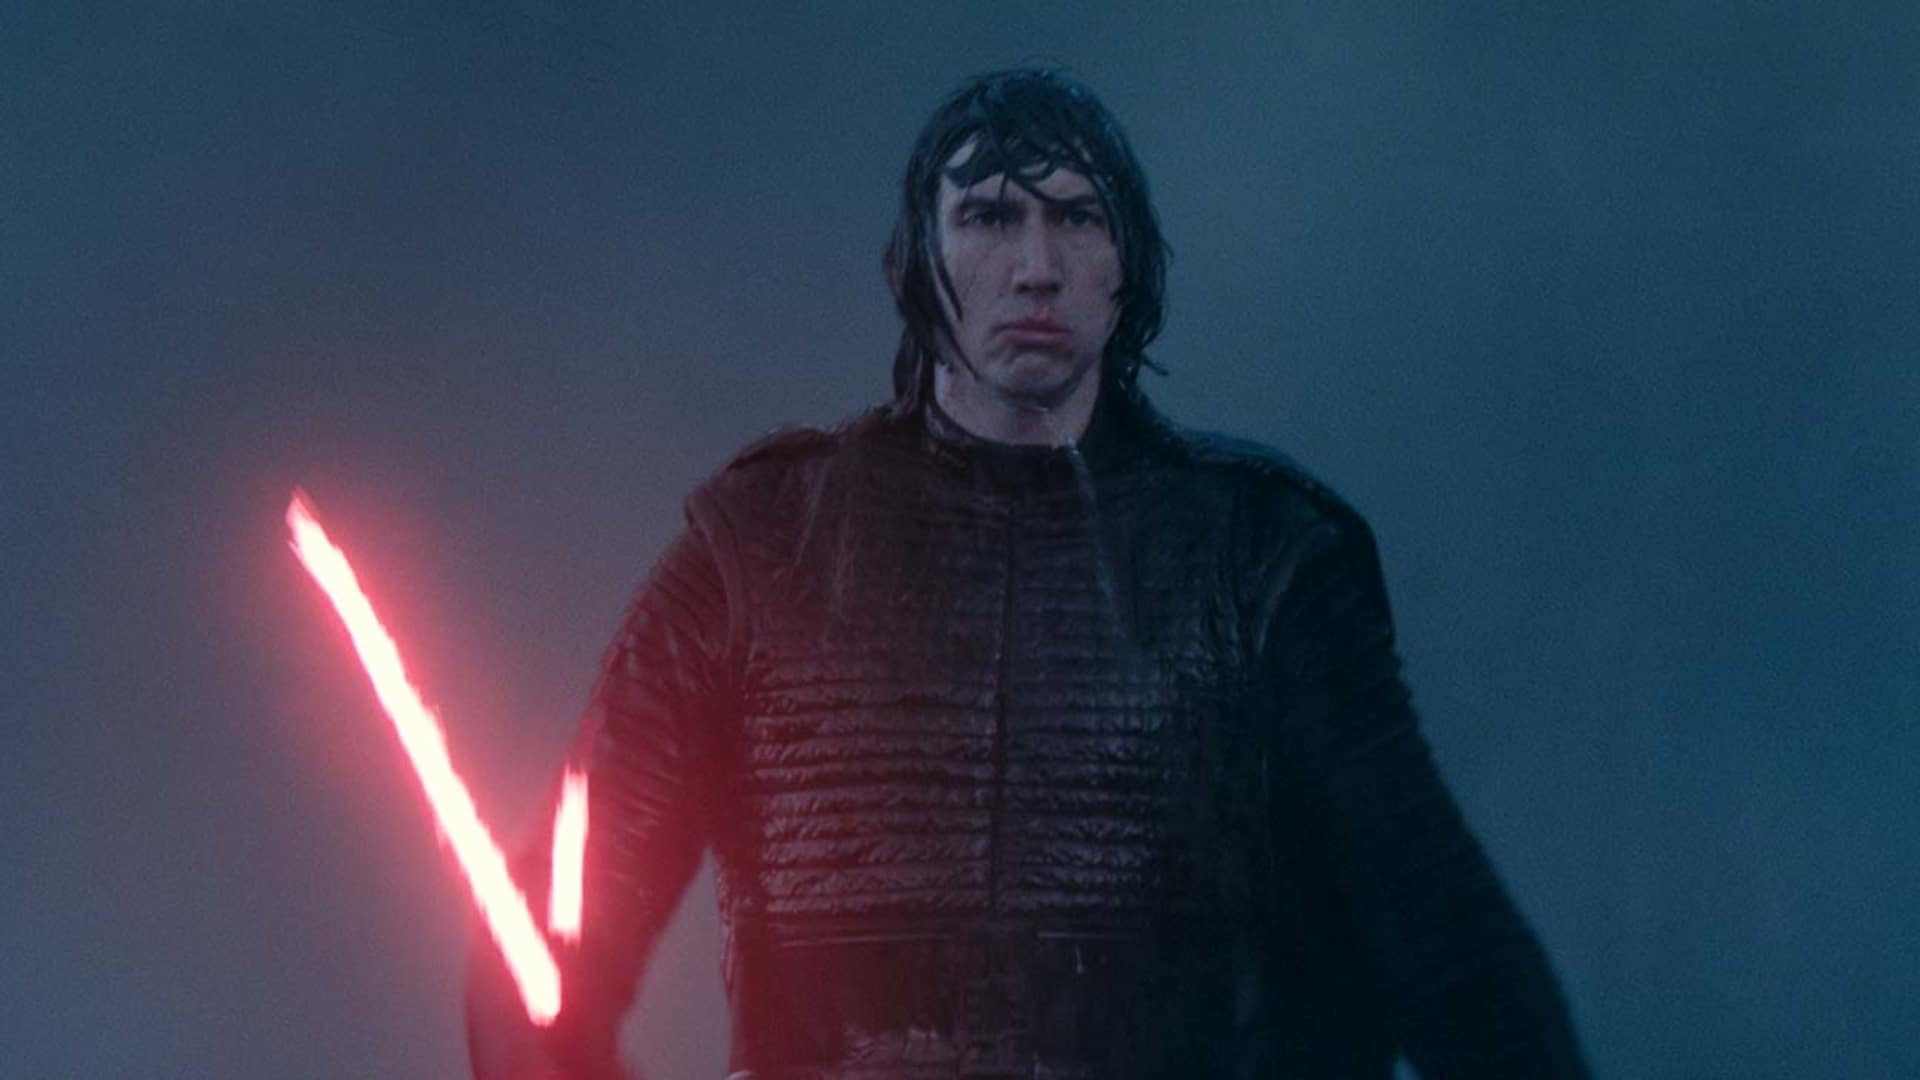 Kylo Ren gets Beaten by Rey and the reason gets revealed